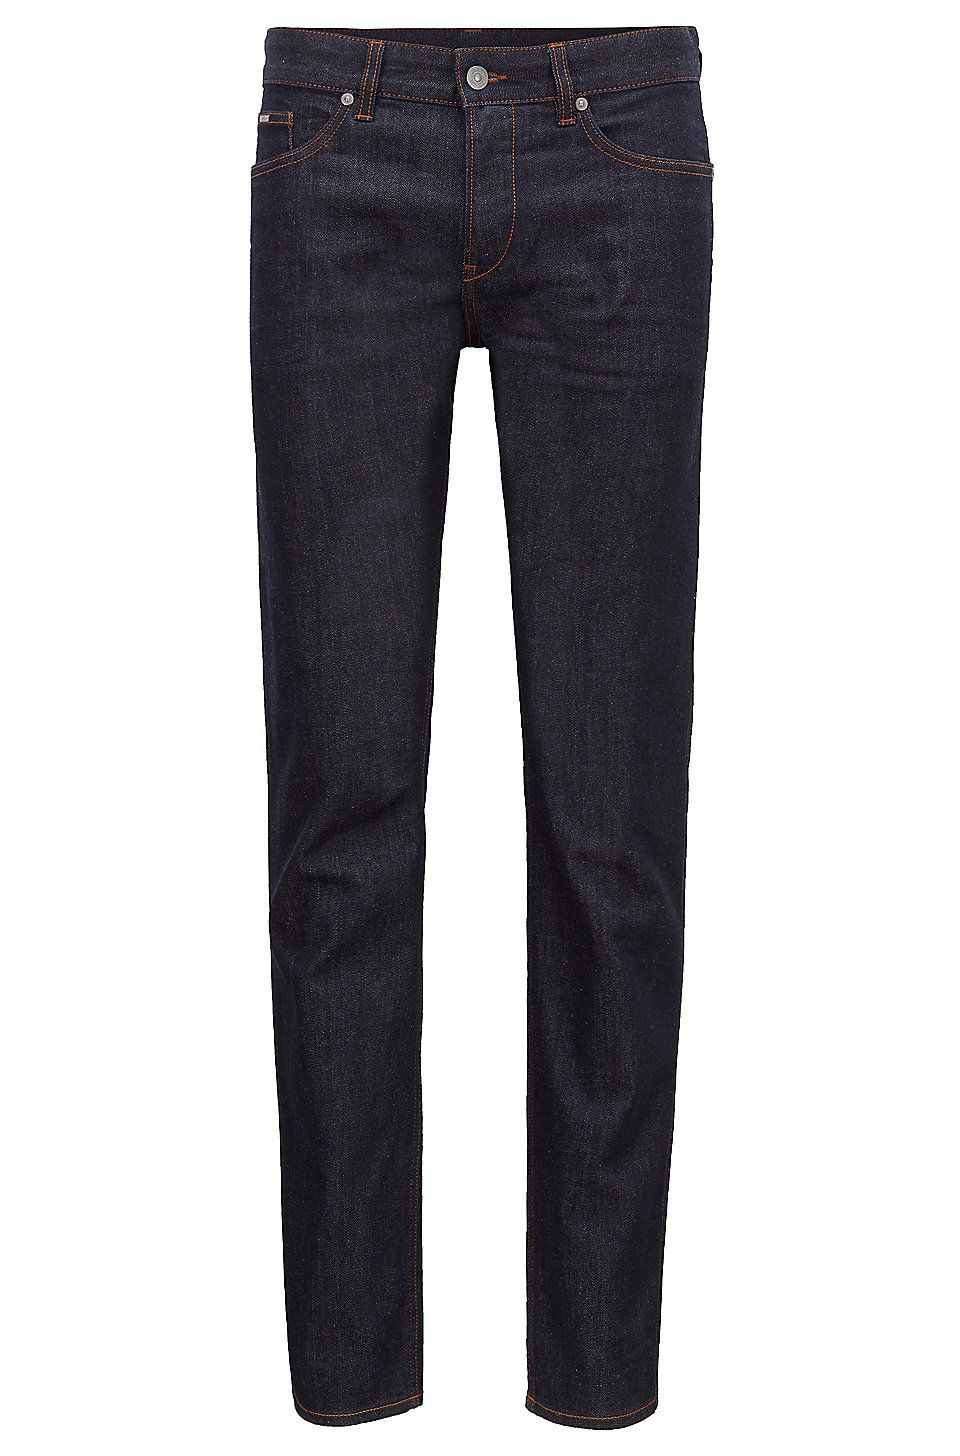 Hugo Boss Slim Fit Jeans In Rinse Washed Stretch Denim Dark Blue Jeans From Boss For Men In The Official Hugo Boss Online Store Free Shipping